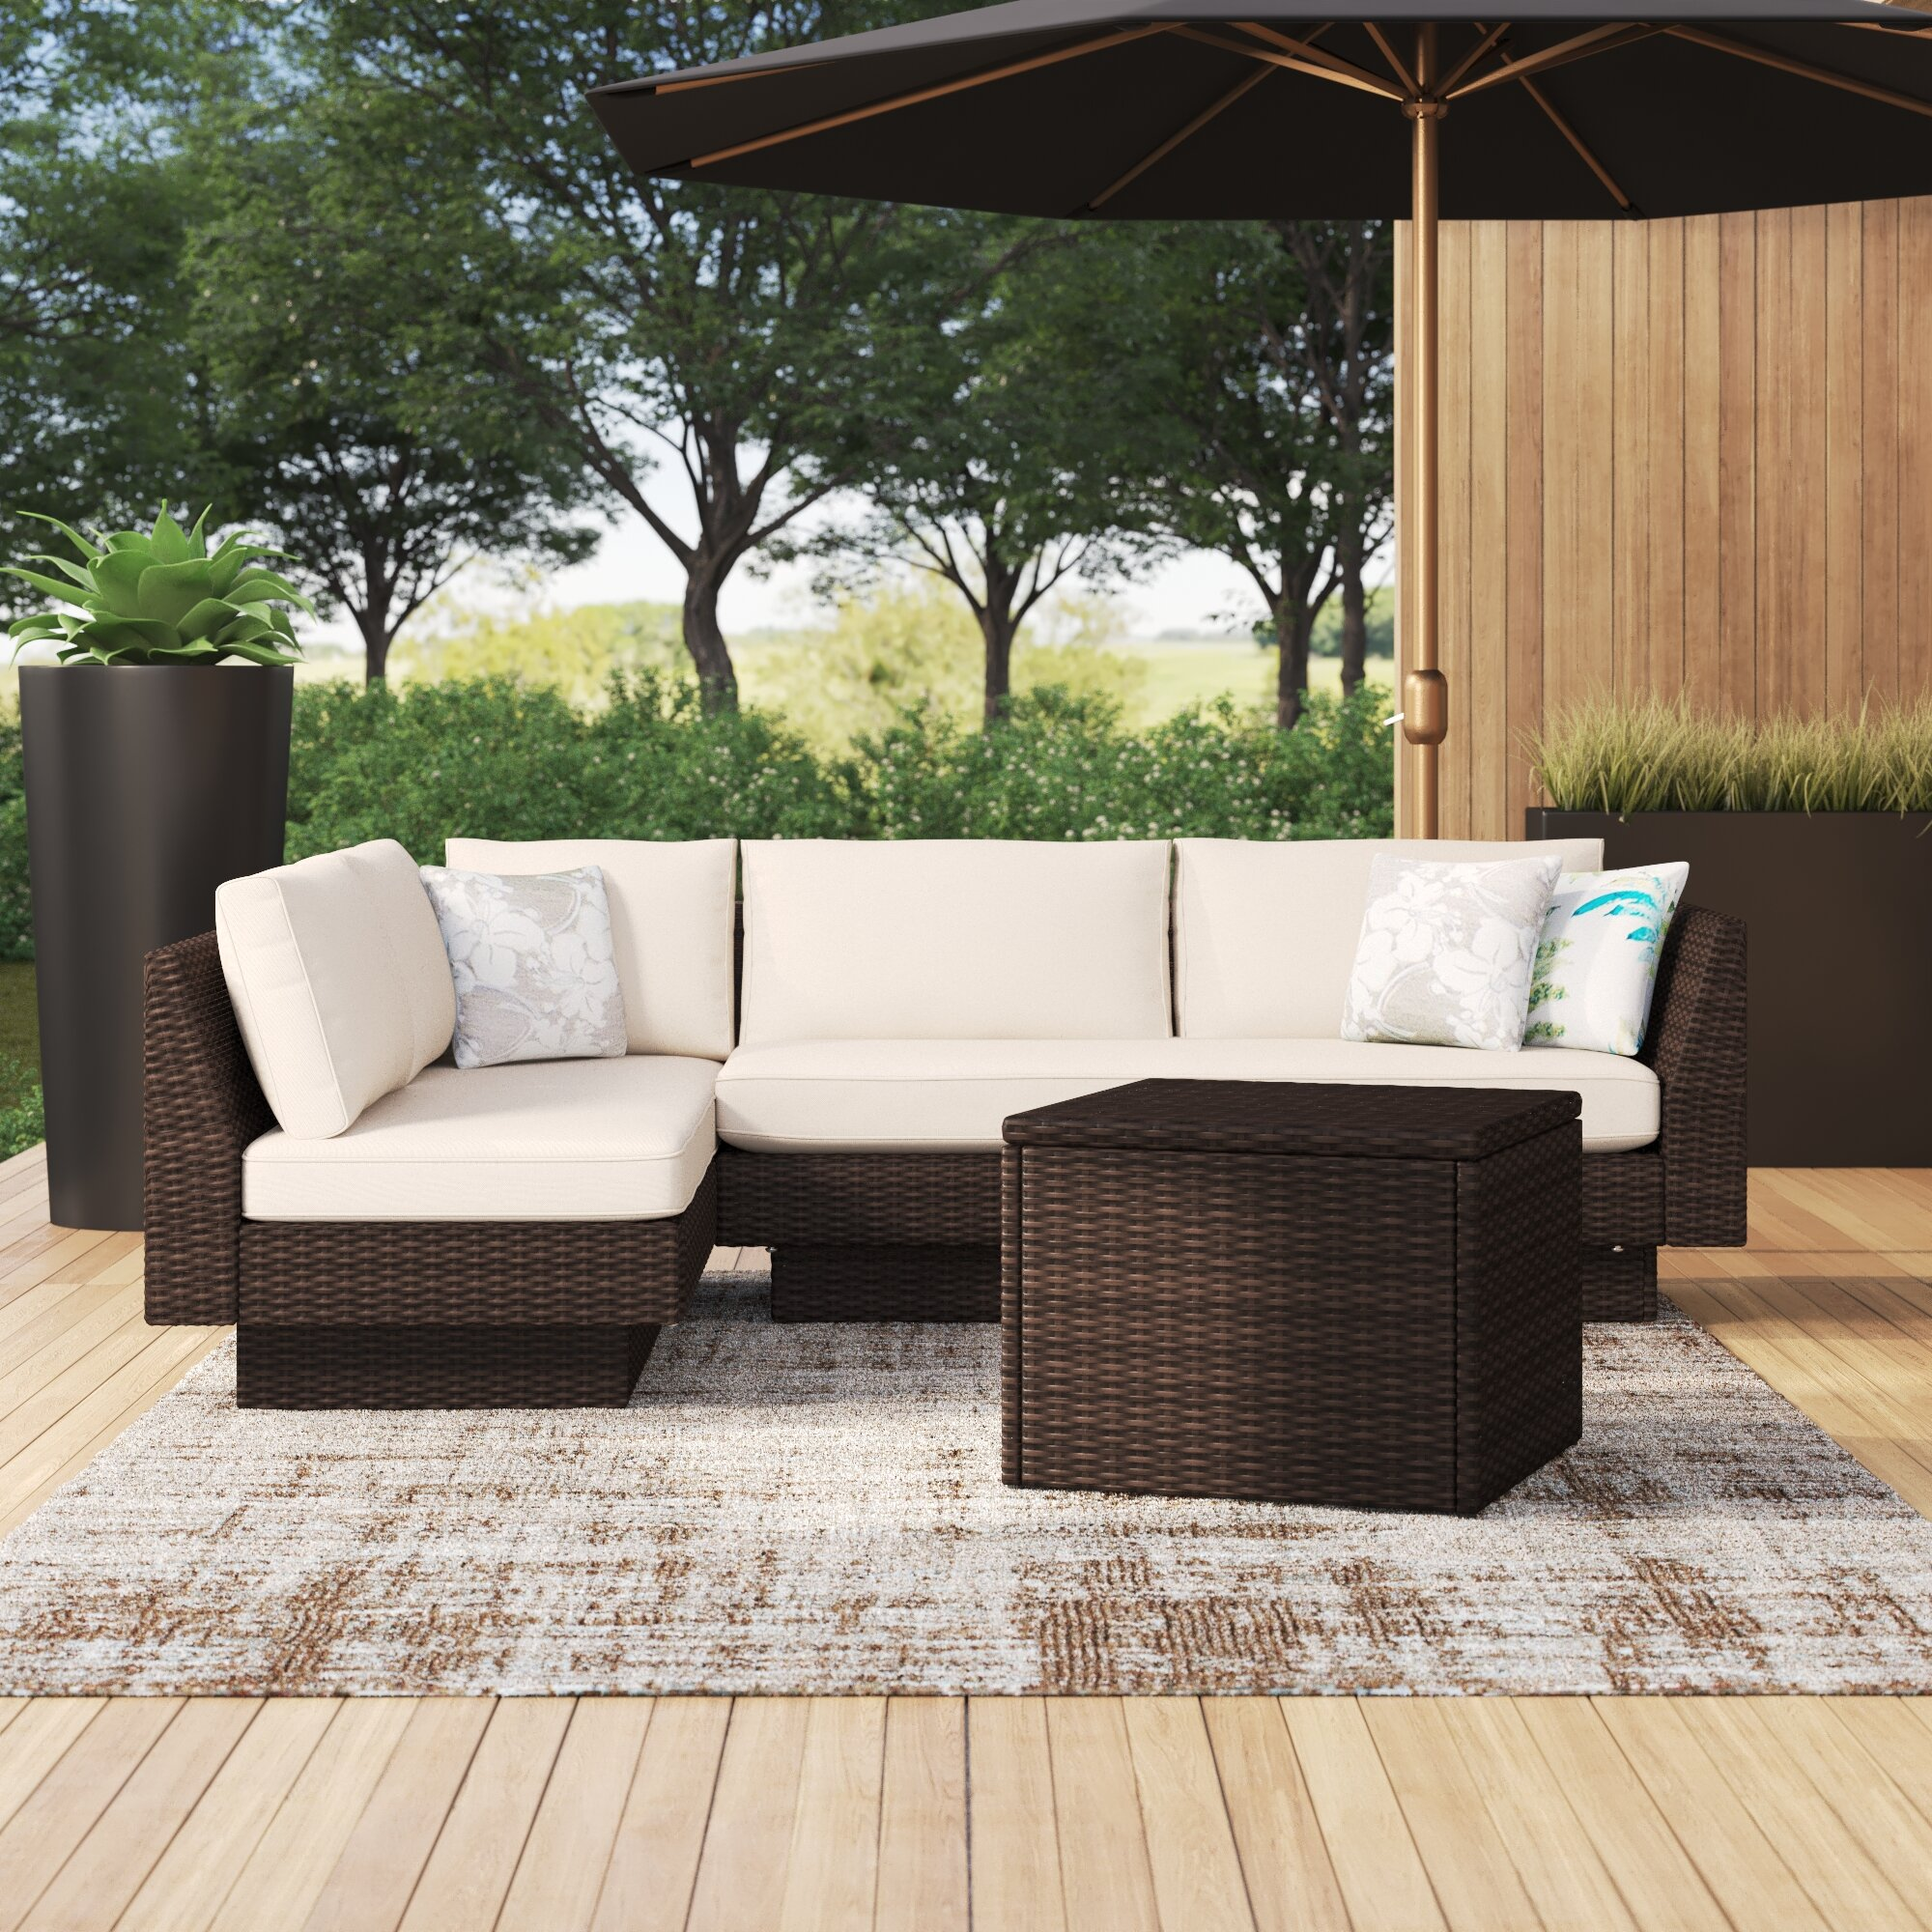 Brayden Studio Addora Outdoor 2 Piece Rattan Seating Group With Cushions Reviews Wayfair